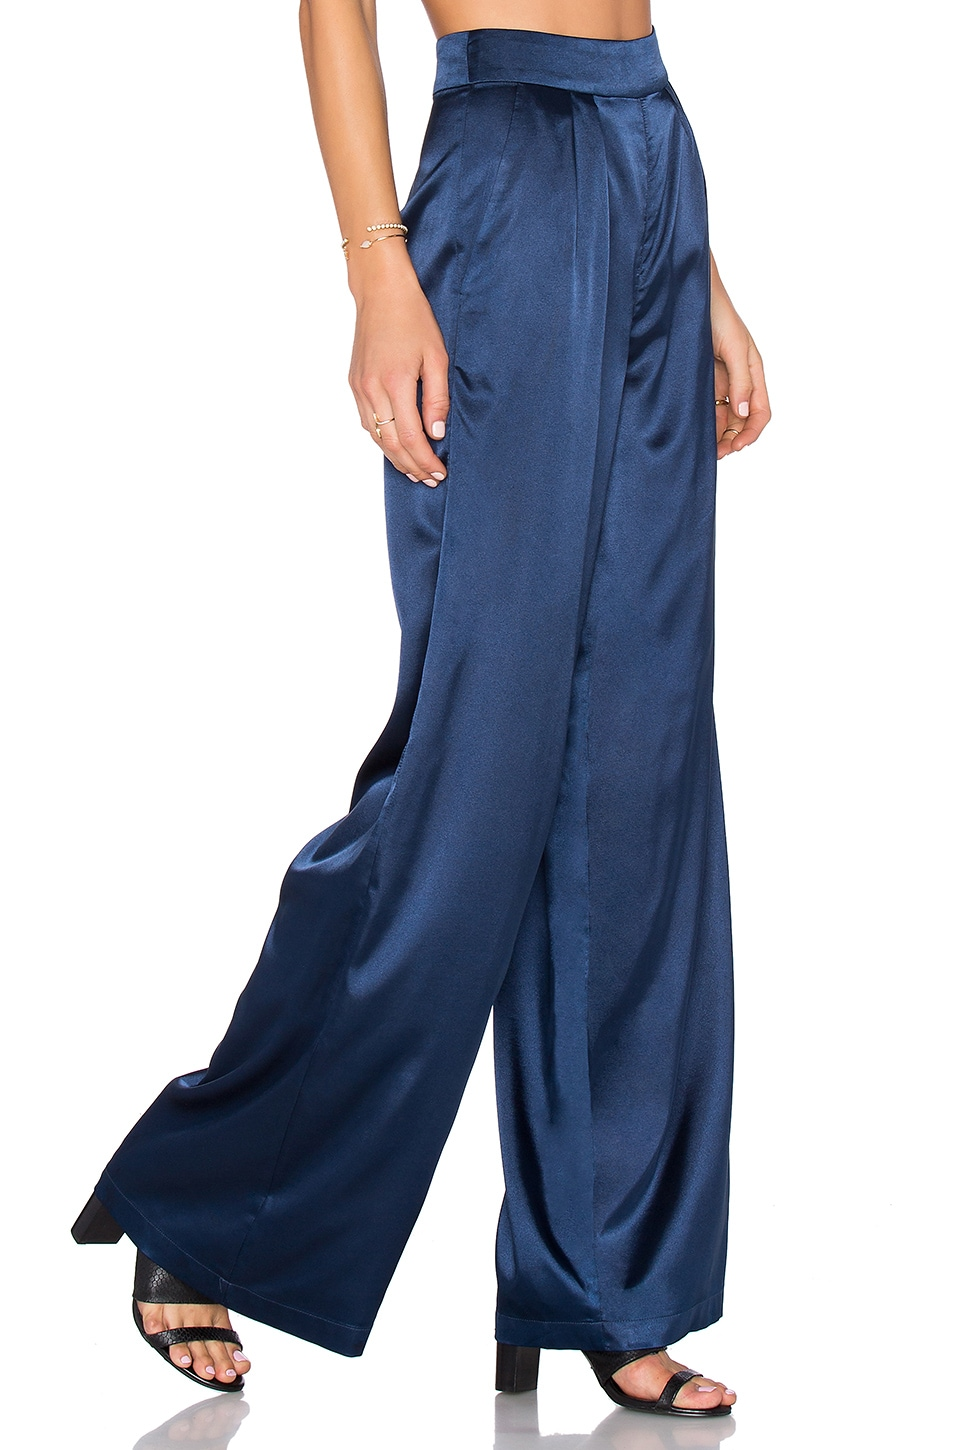 House of Harlow 1960 x REVOLVE Charlie Wide Leg Pant in Navy